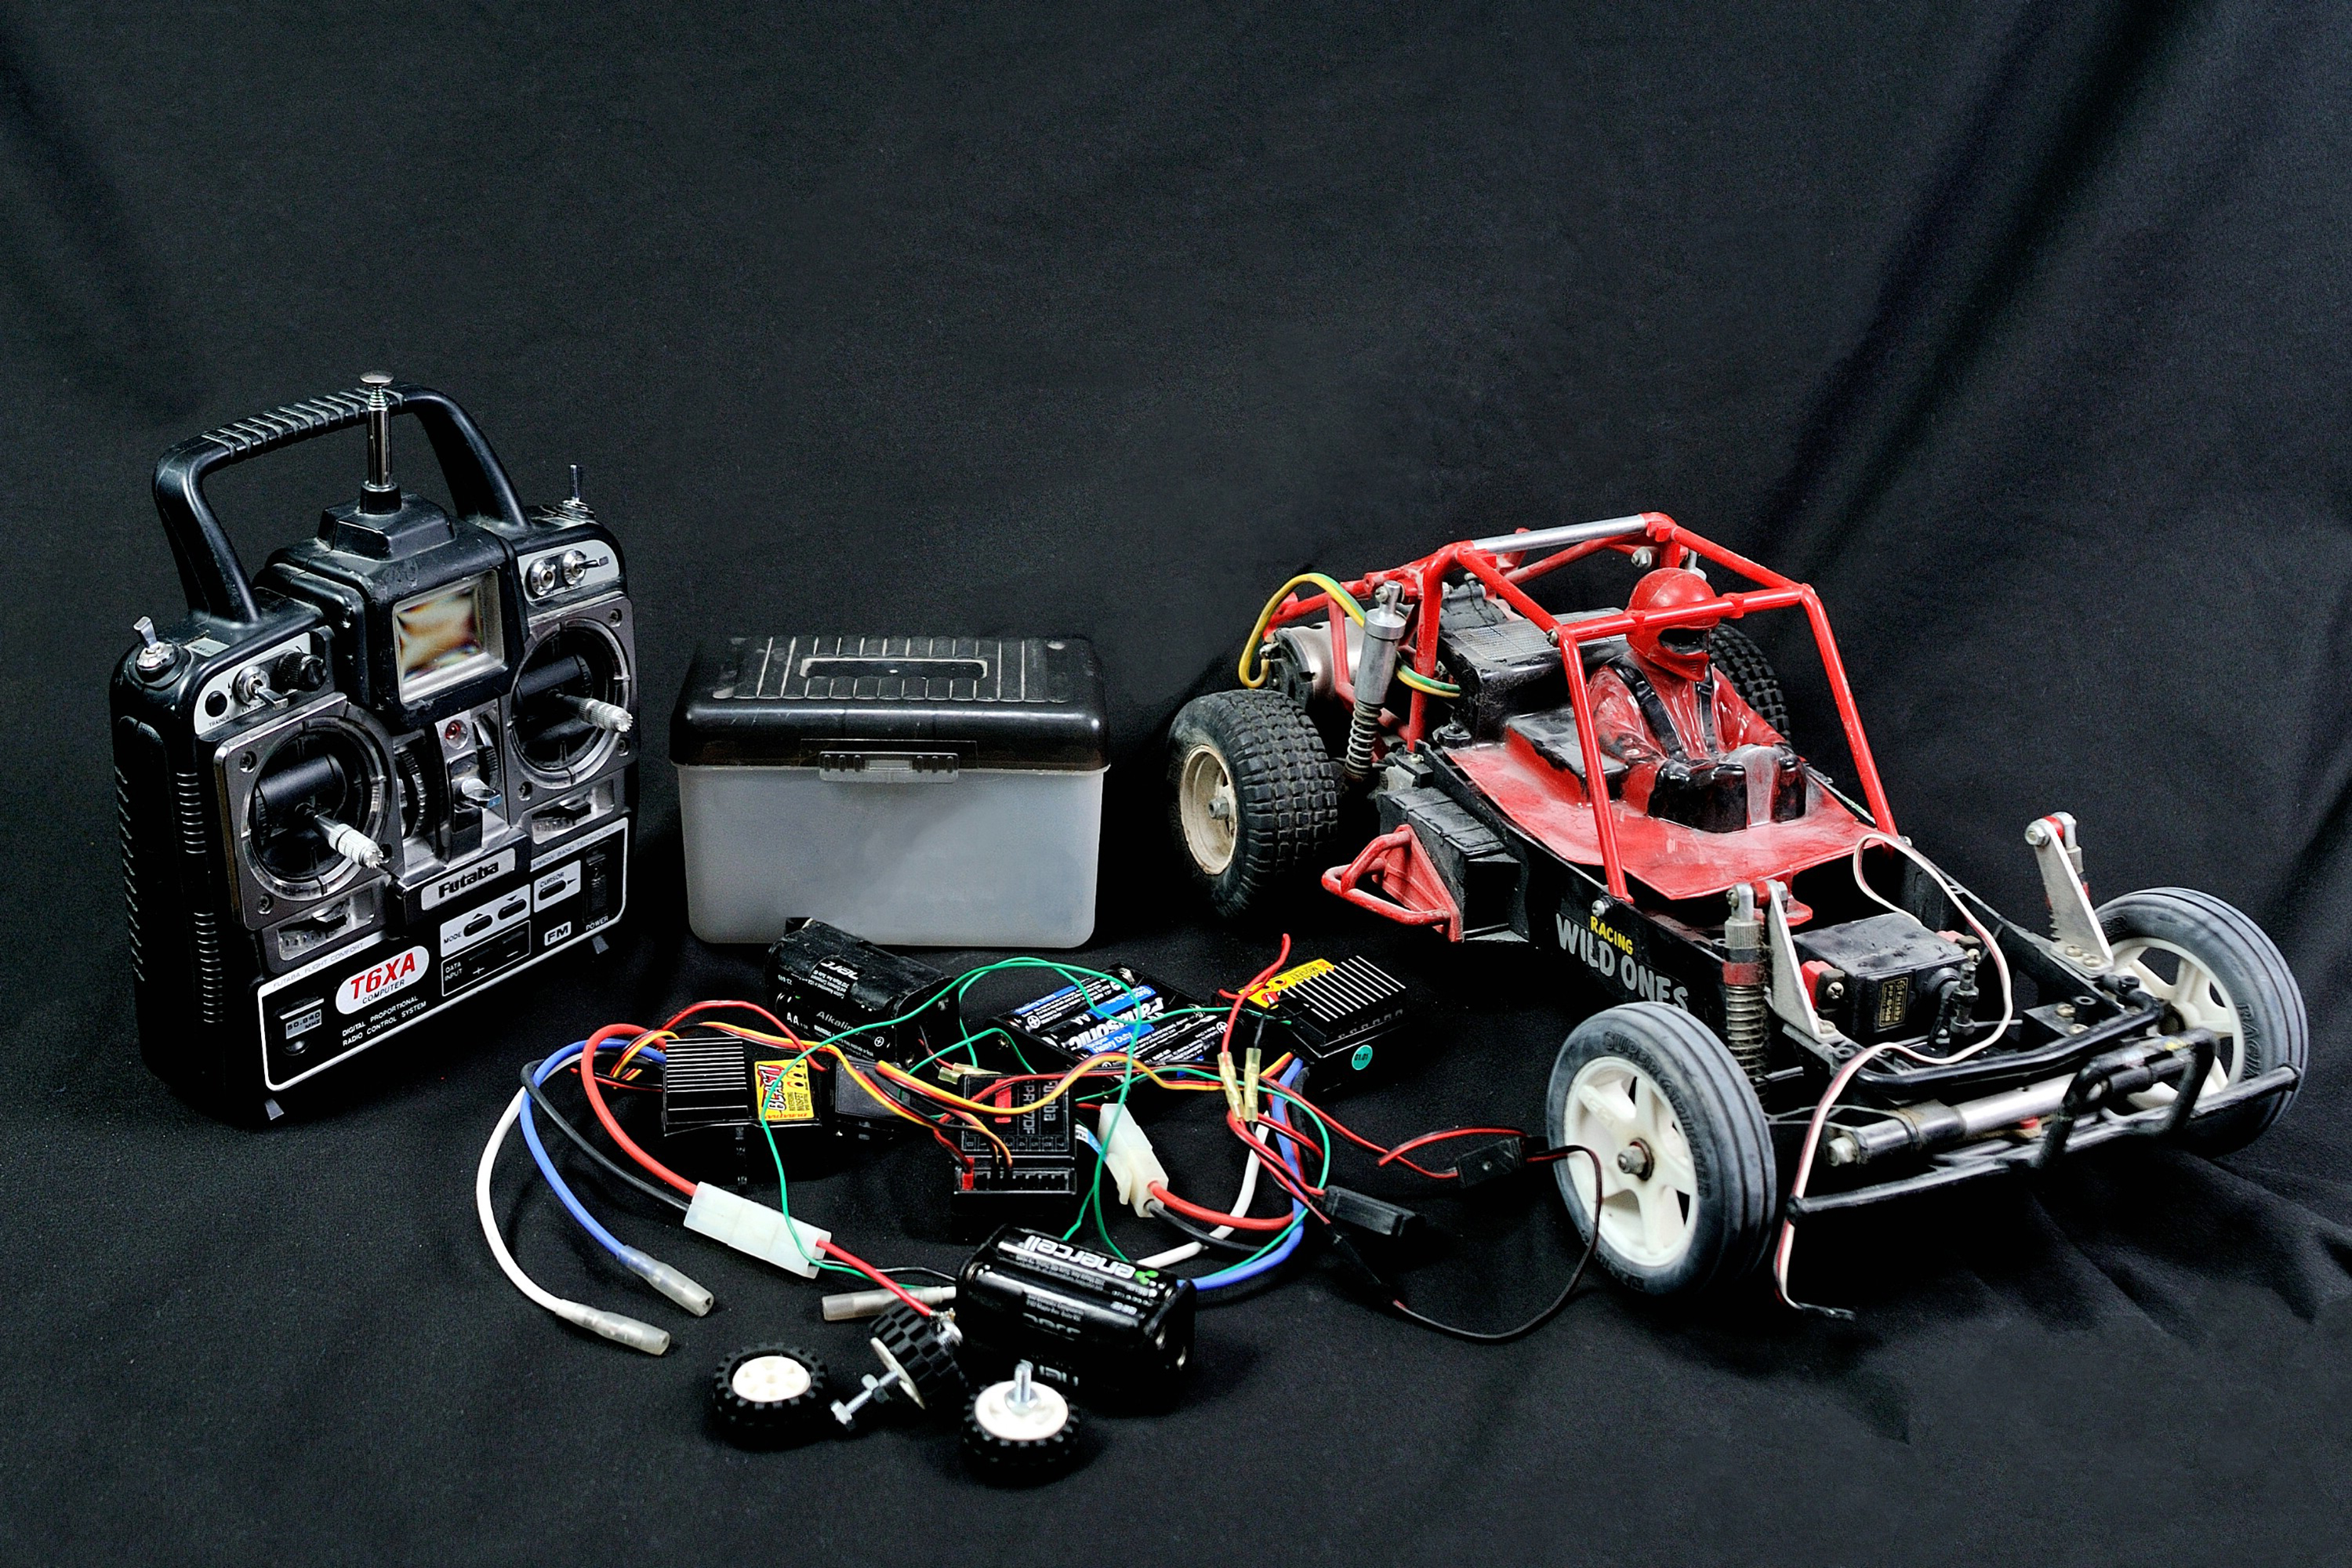 How to make a simple remote control car sciencing for How to build a motor controller